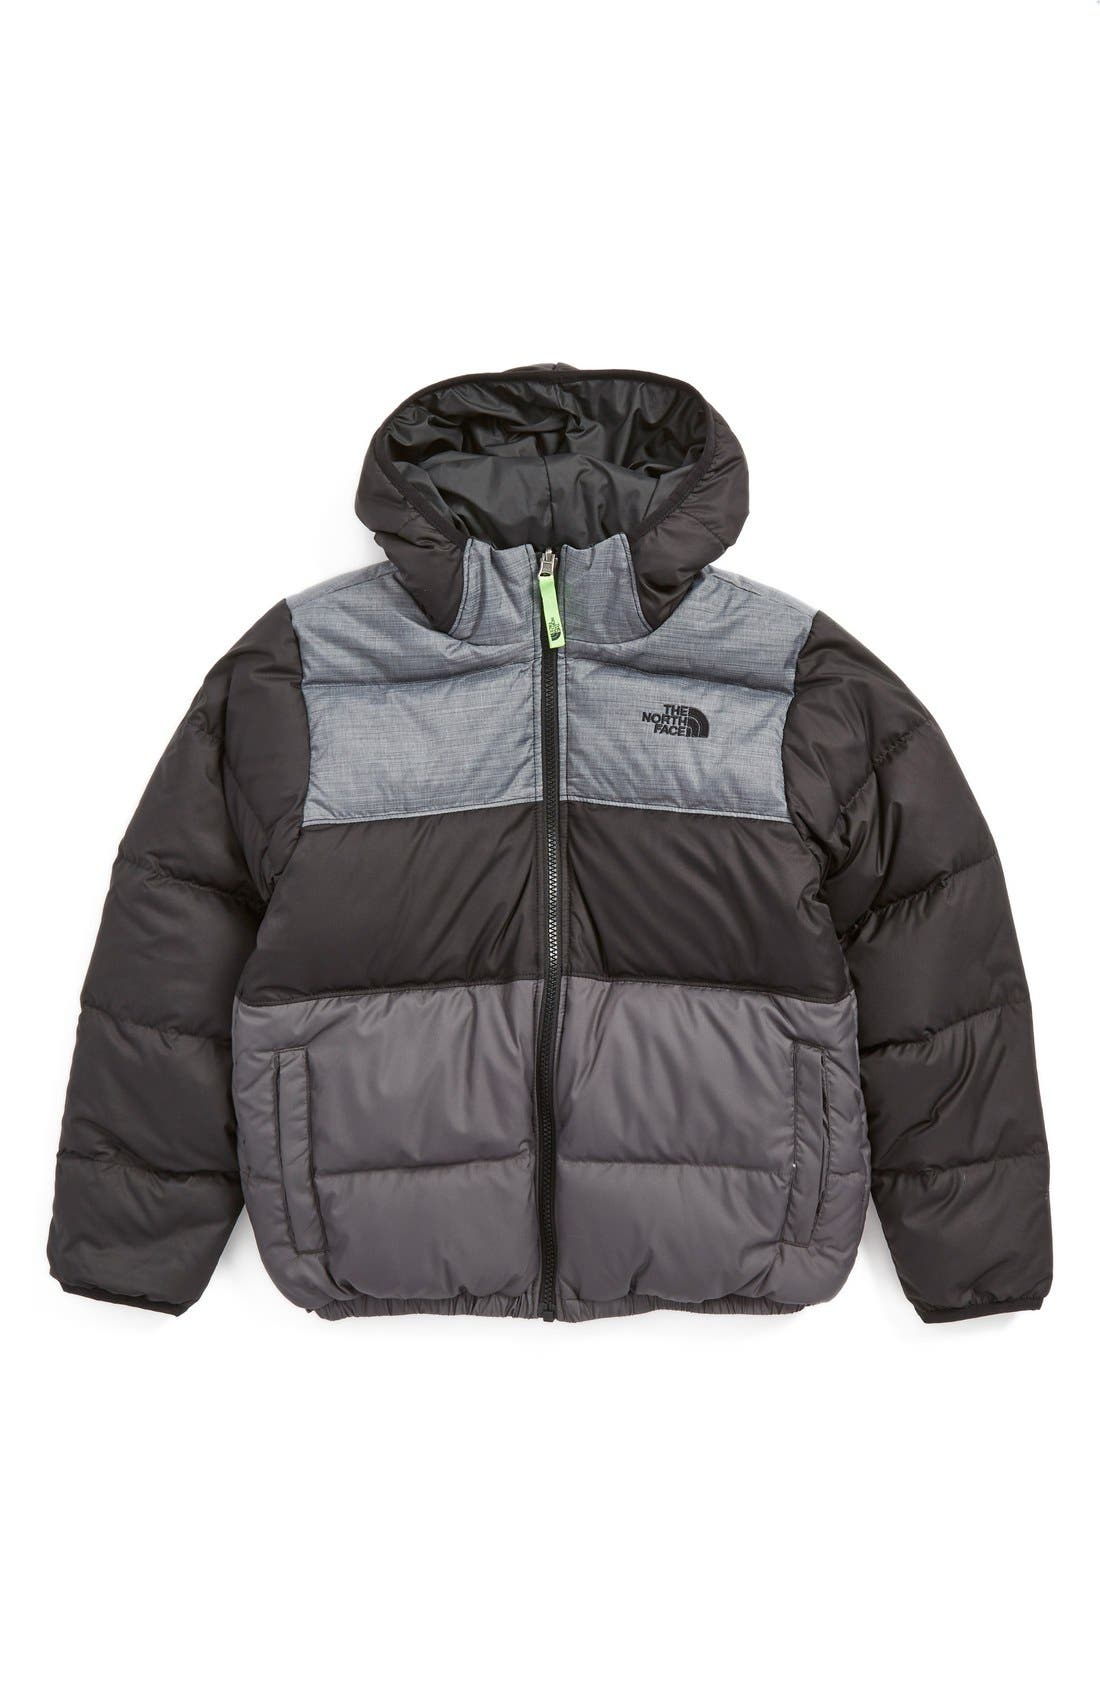 Alternate Image 1 Selected - The North Face 'Moondoggy' Water Repellent Reversible Down Jacket (Big Boys)